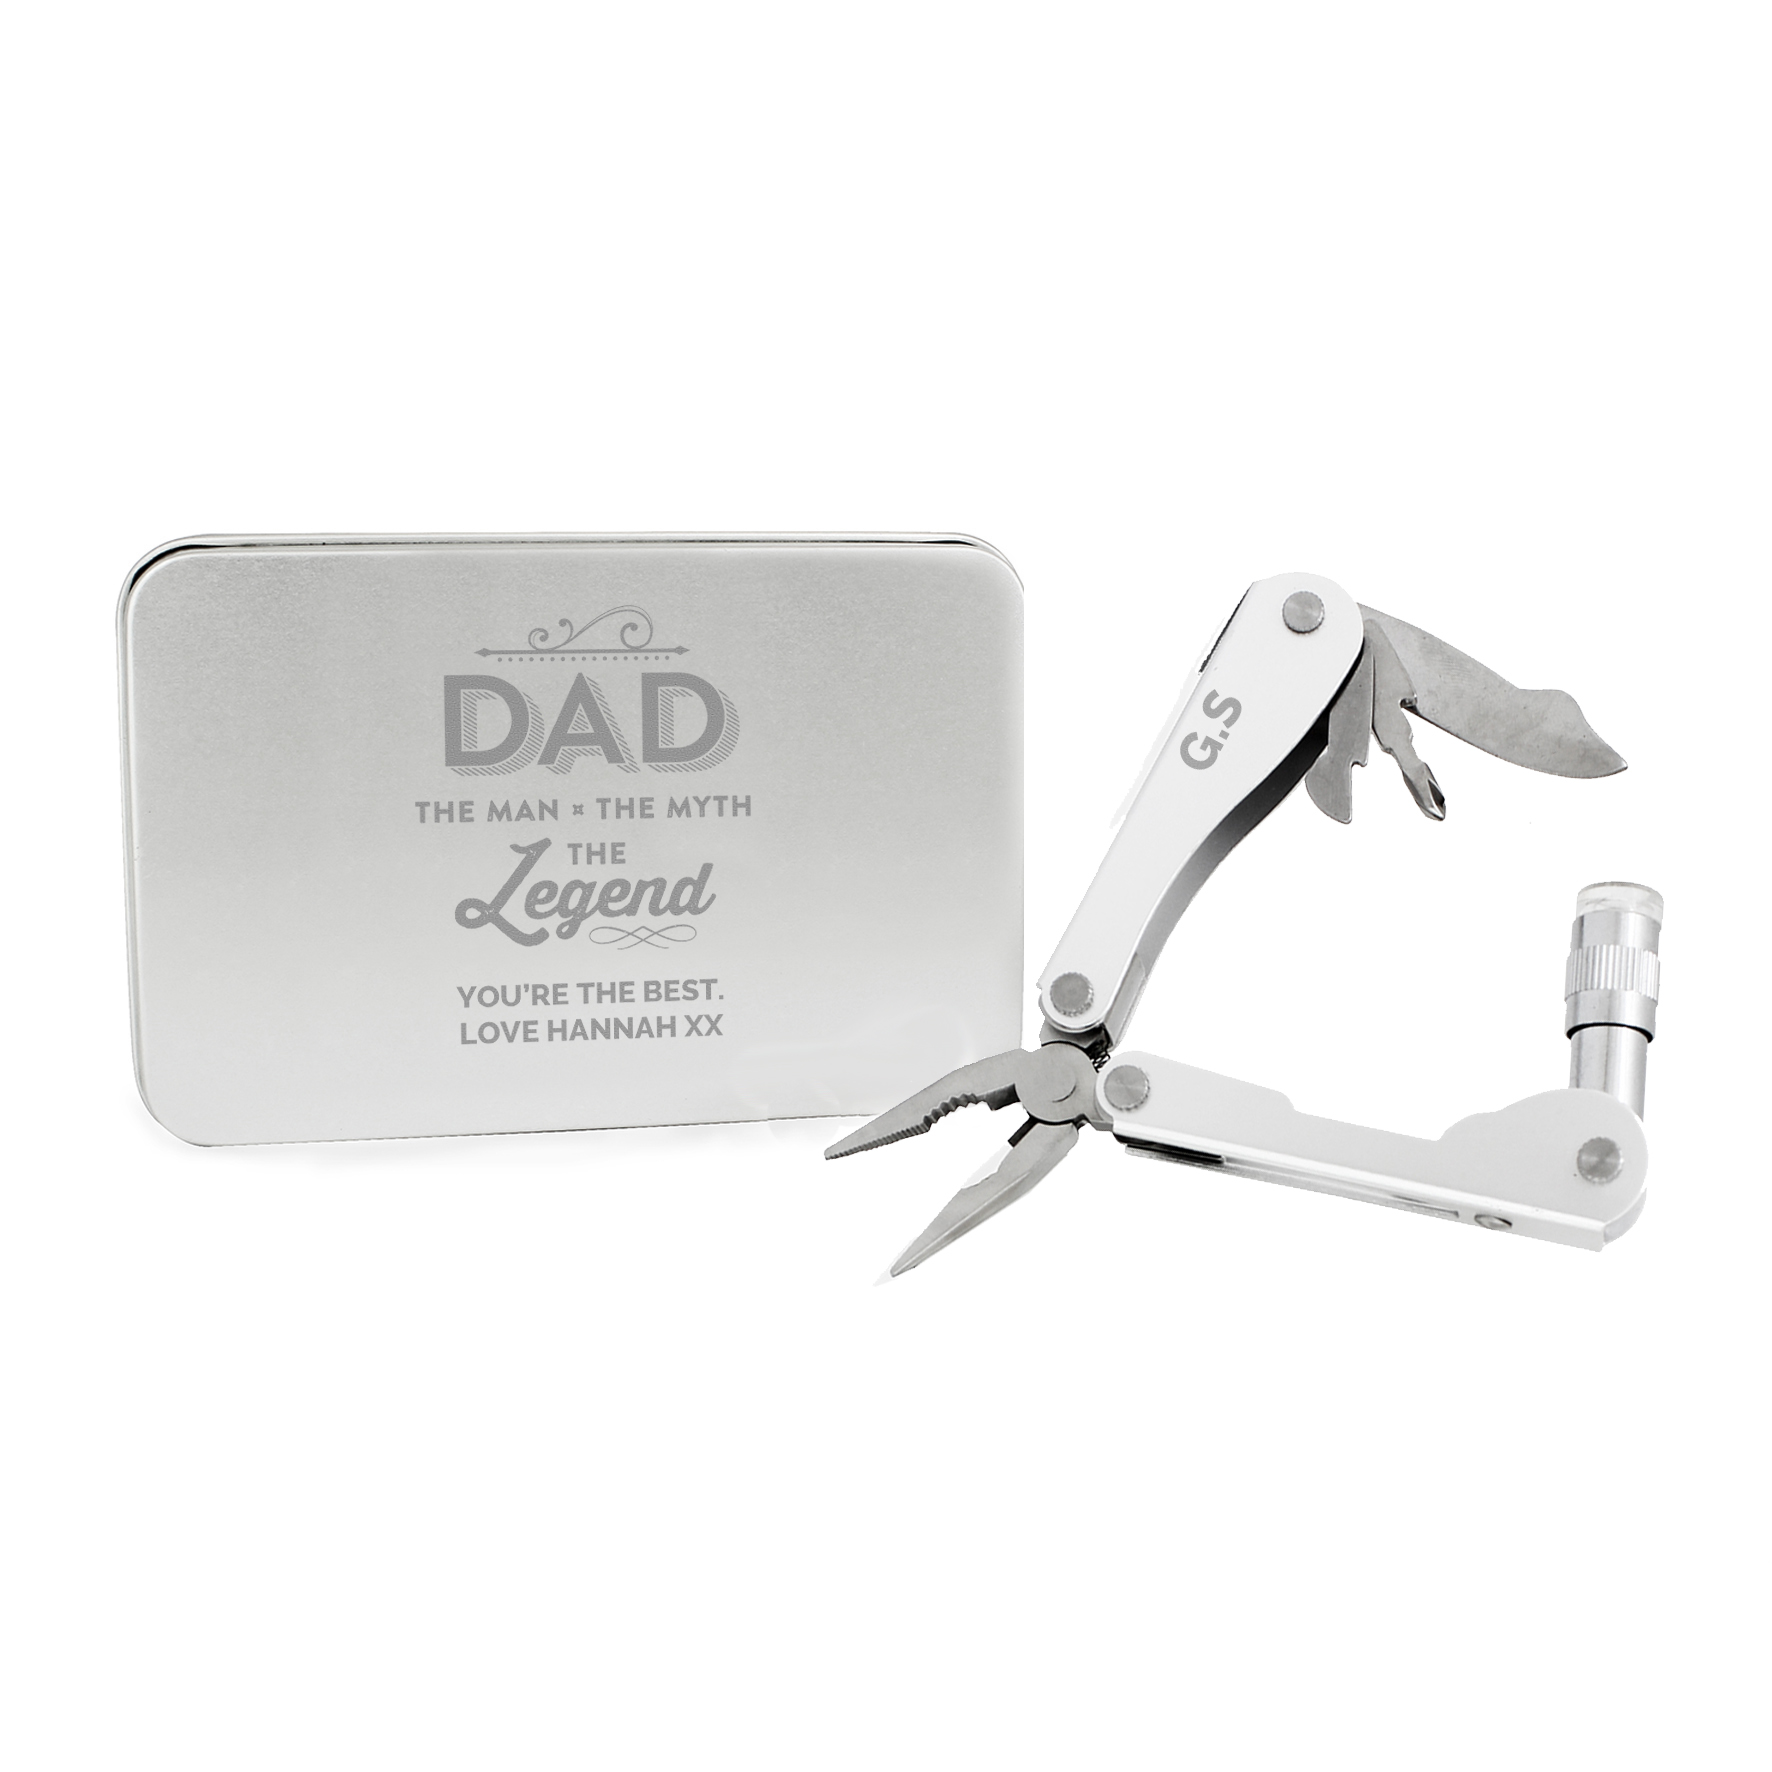 Personalised Multi Tool - Dad The Legend